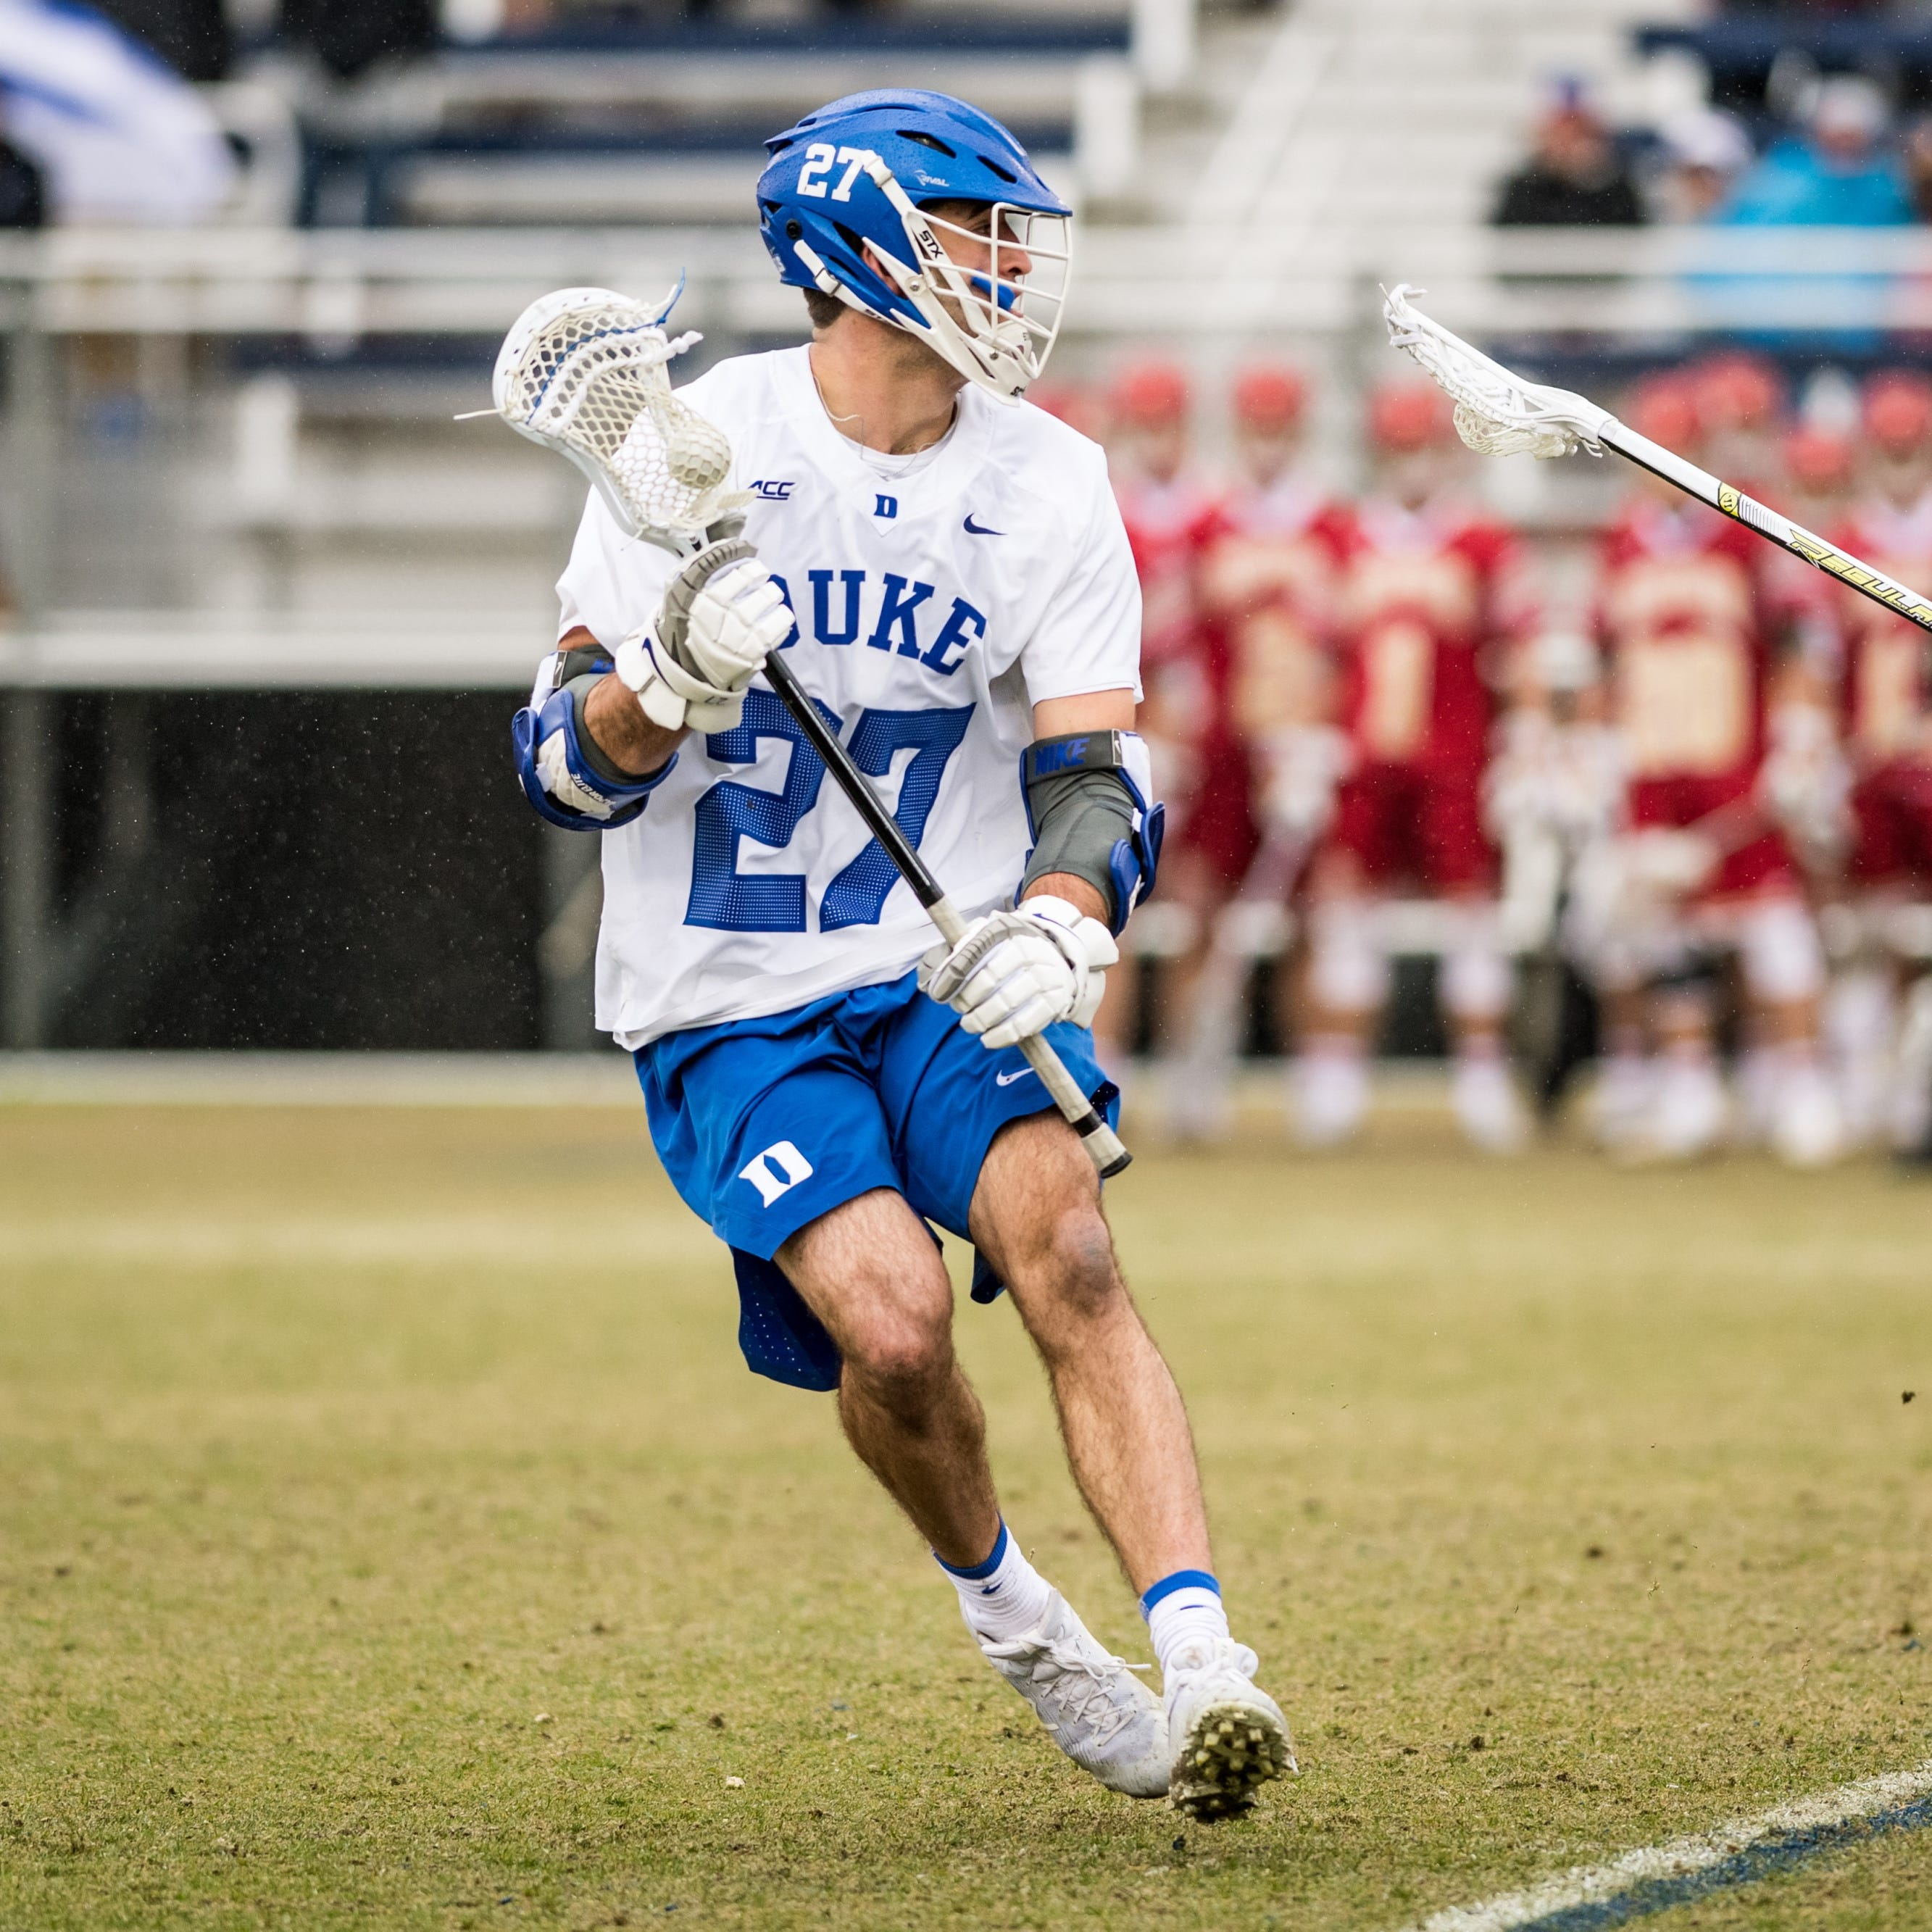 Mountain Lakes grad, Duke senior Brad Smith drafted into Premier Lacrosse League